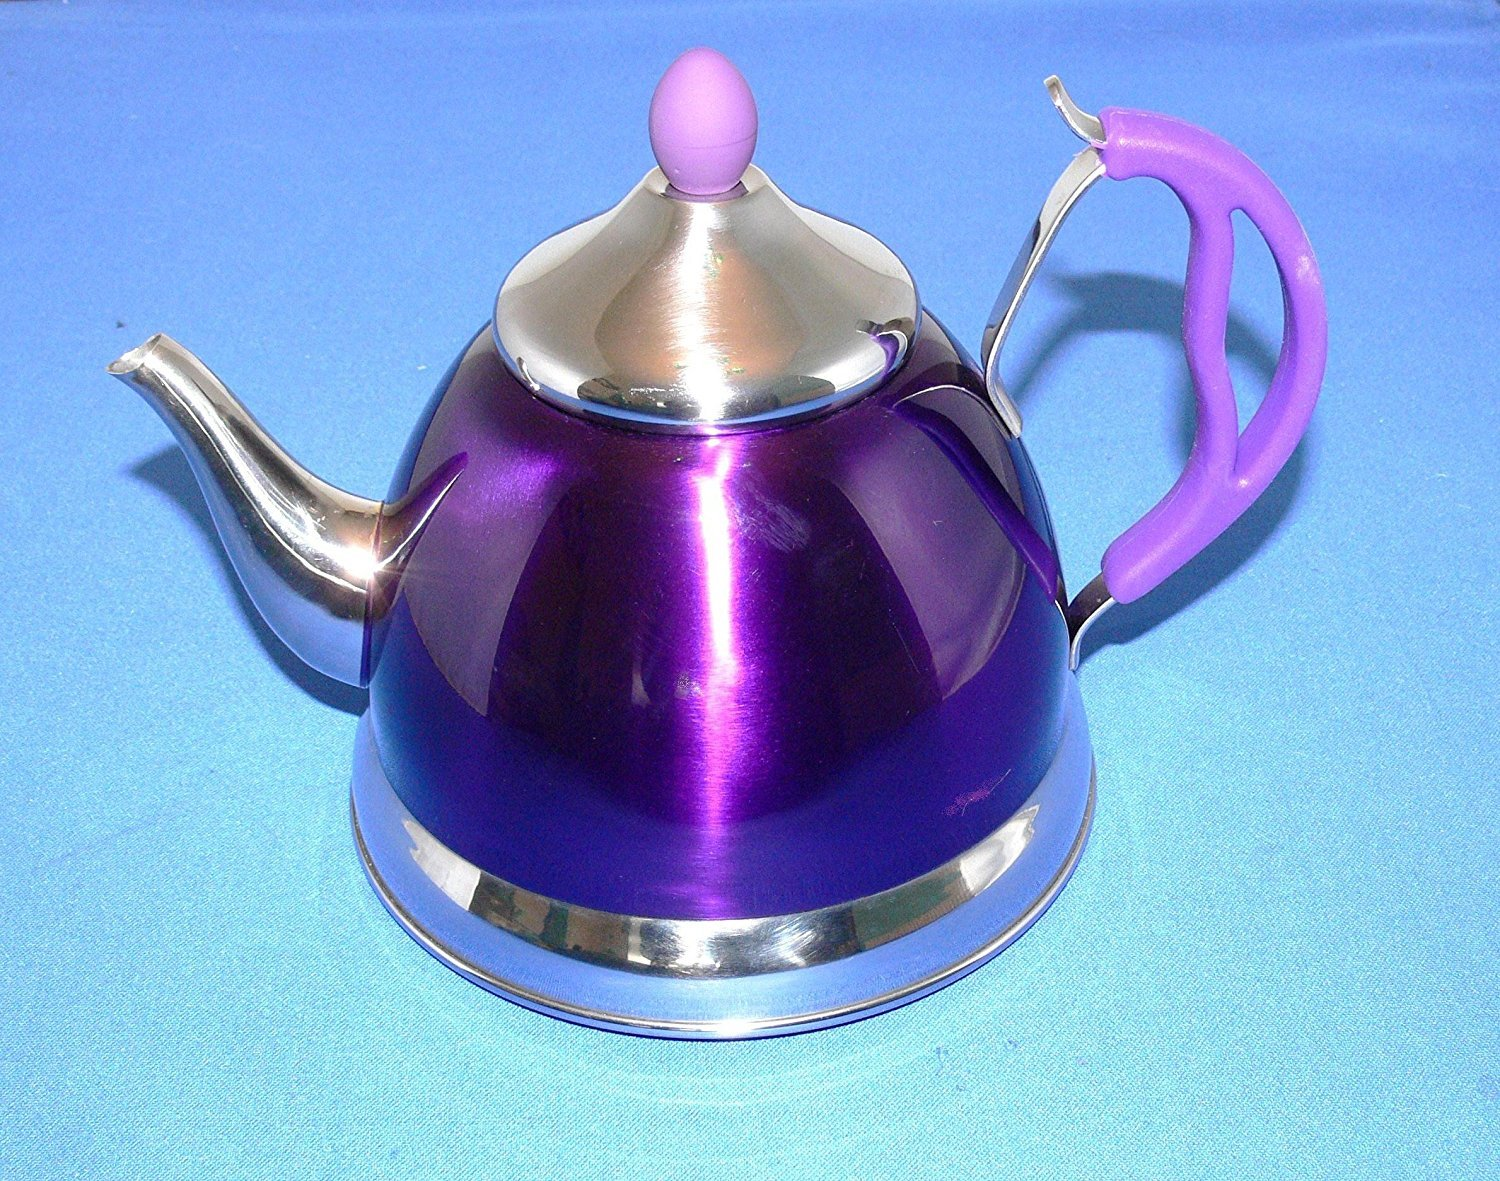 Retro Stove Top Kettle & Teapot Combined. Metallic Purple & Chrome. Suitable for Ceramic - Induction Hobs